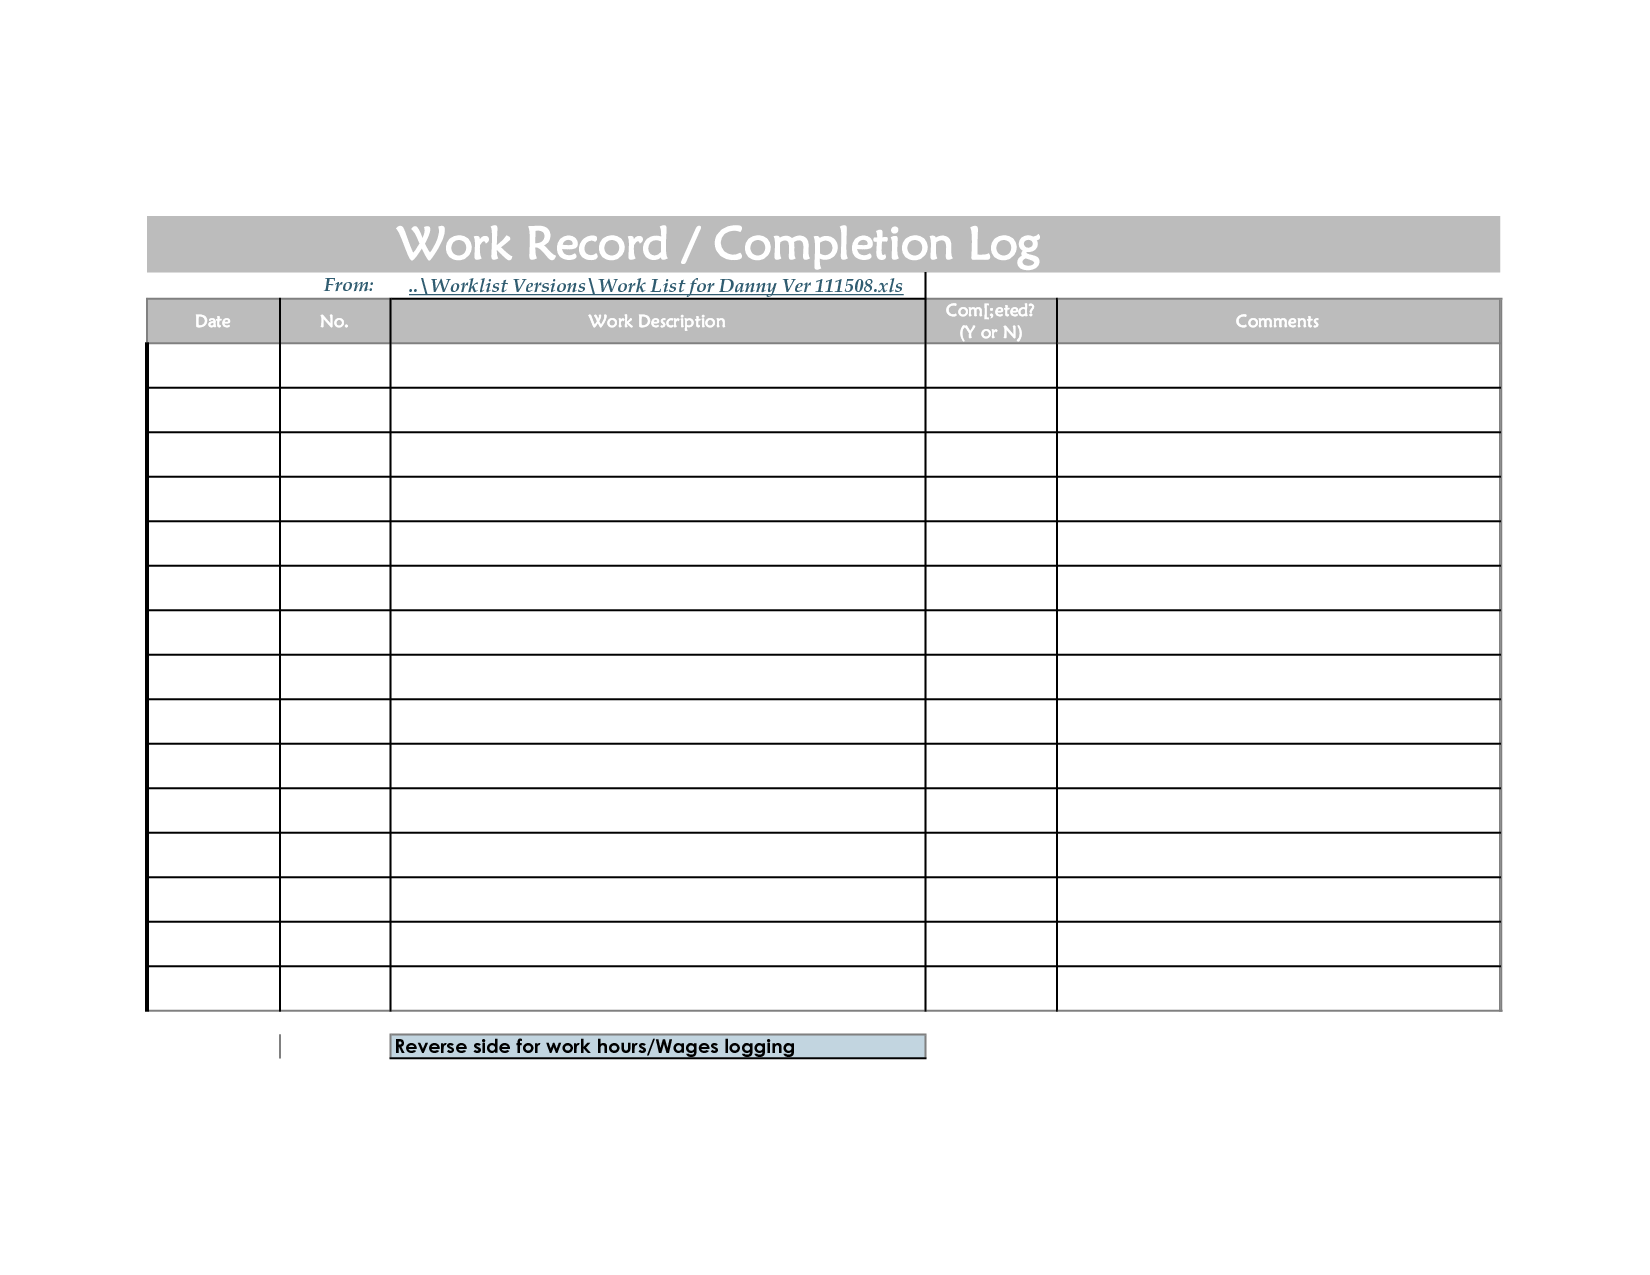 Weekly Work Log Sheet Template With Images